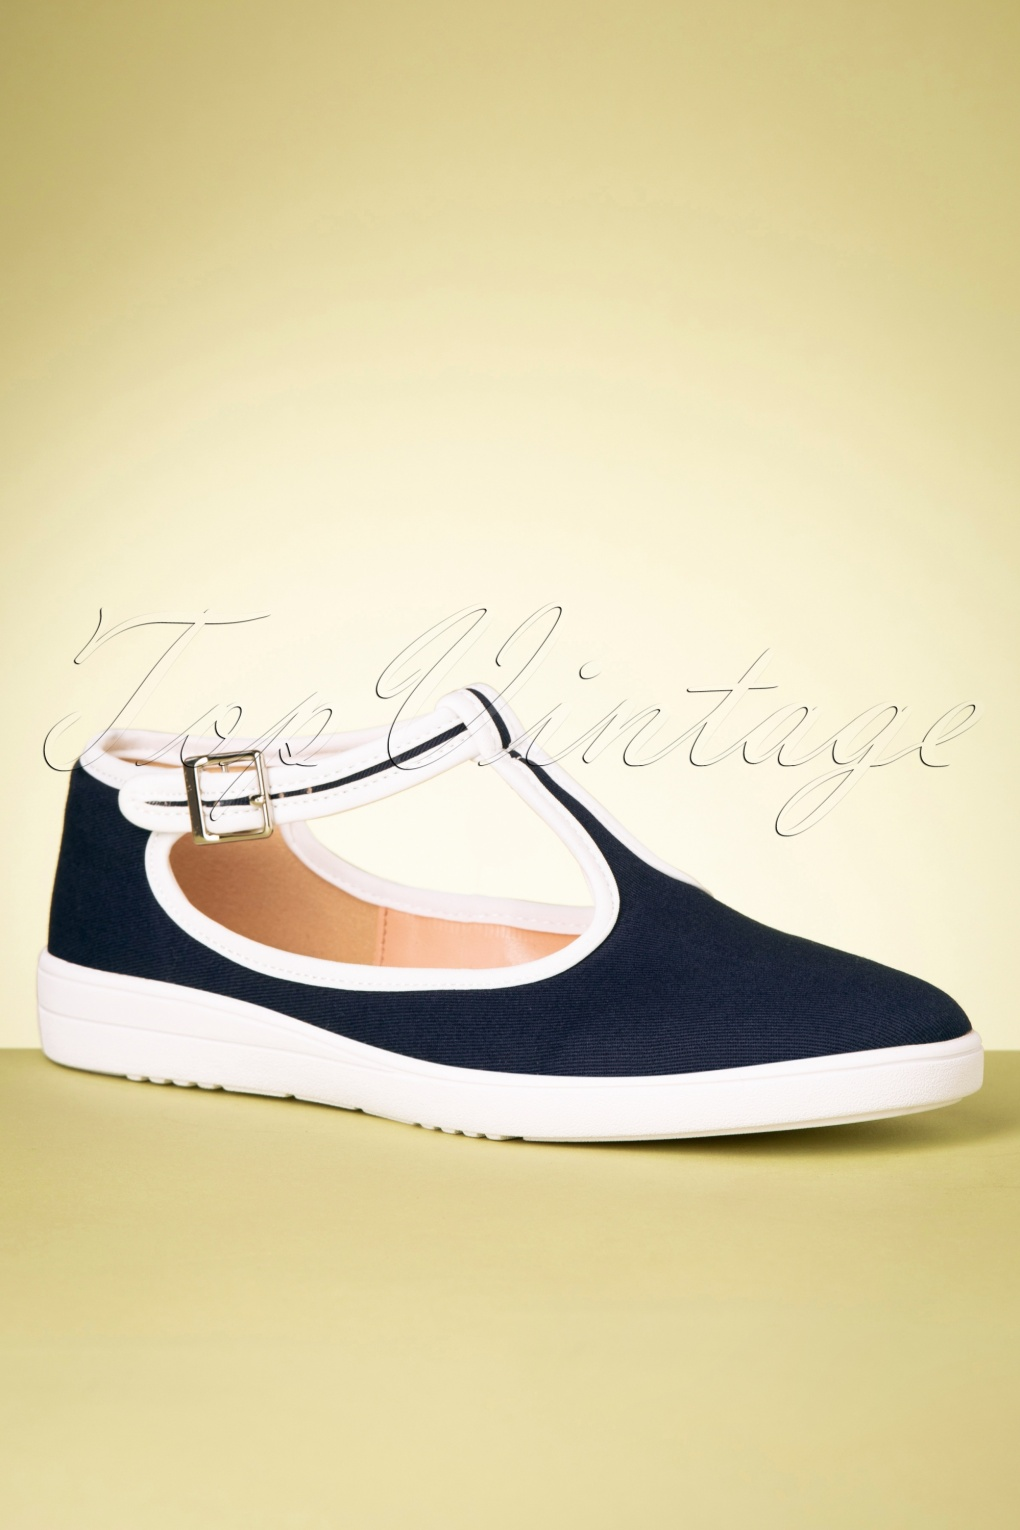 1920s Style Shoes, Heels, Boots 50s Gaia T-Strap Sneakers in Navy £51.38 AT vintagedancer.com